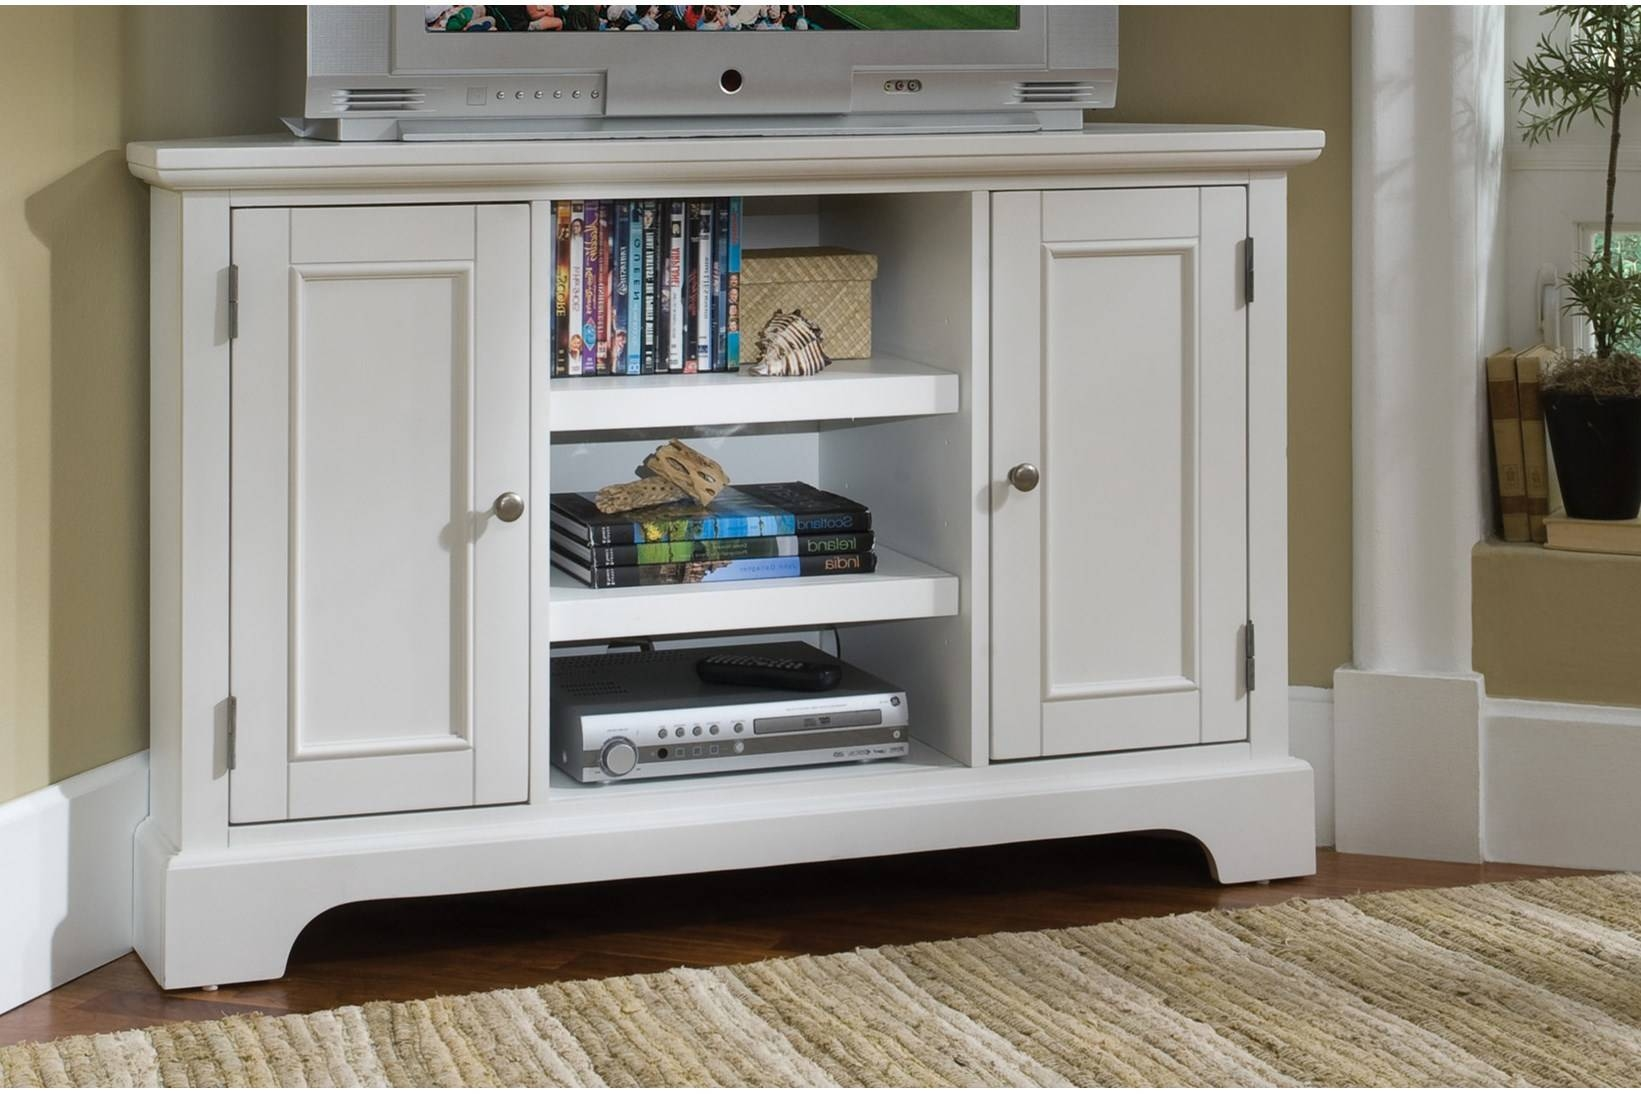 White Corner Tv Cabinet With 2 Doors On Both Sides And 3 Open inside Corner Tv Cabinets For Flat Screens With Doors (Image 14 of 15)